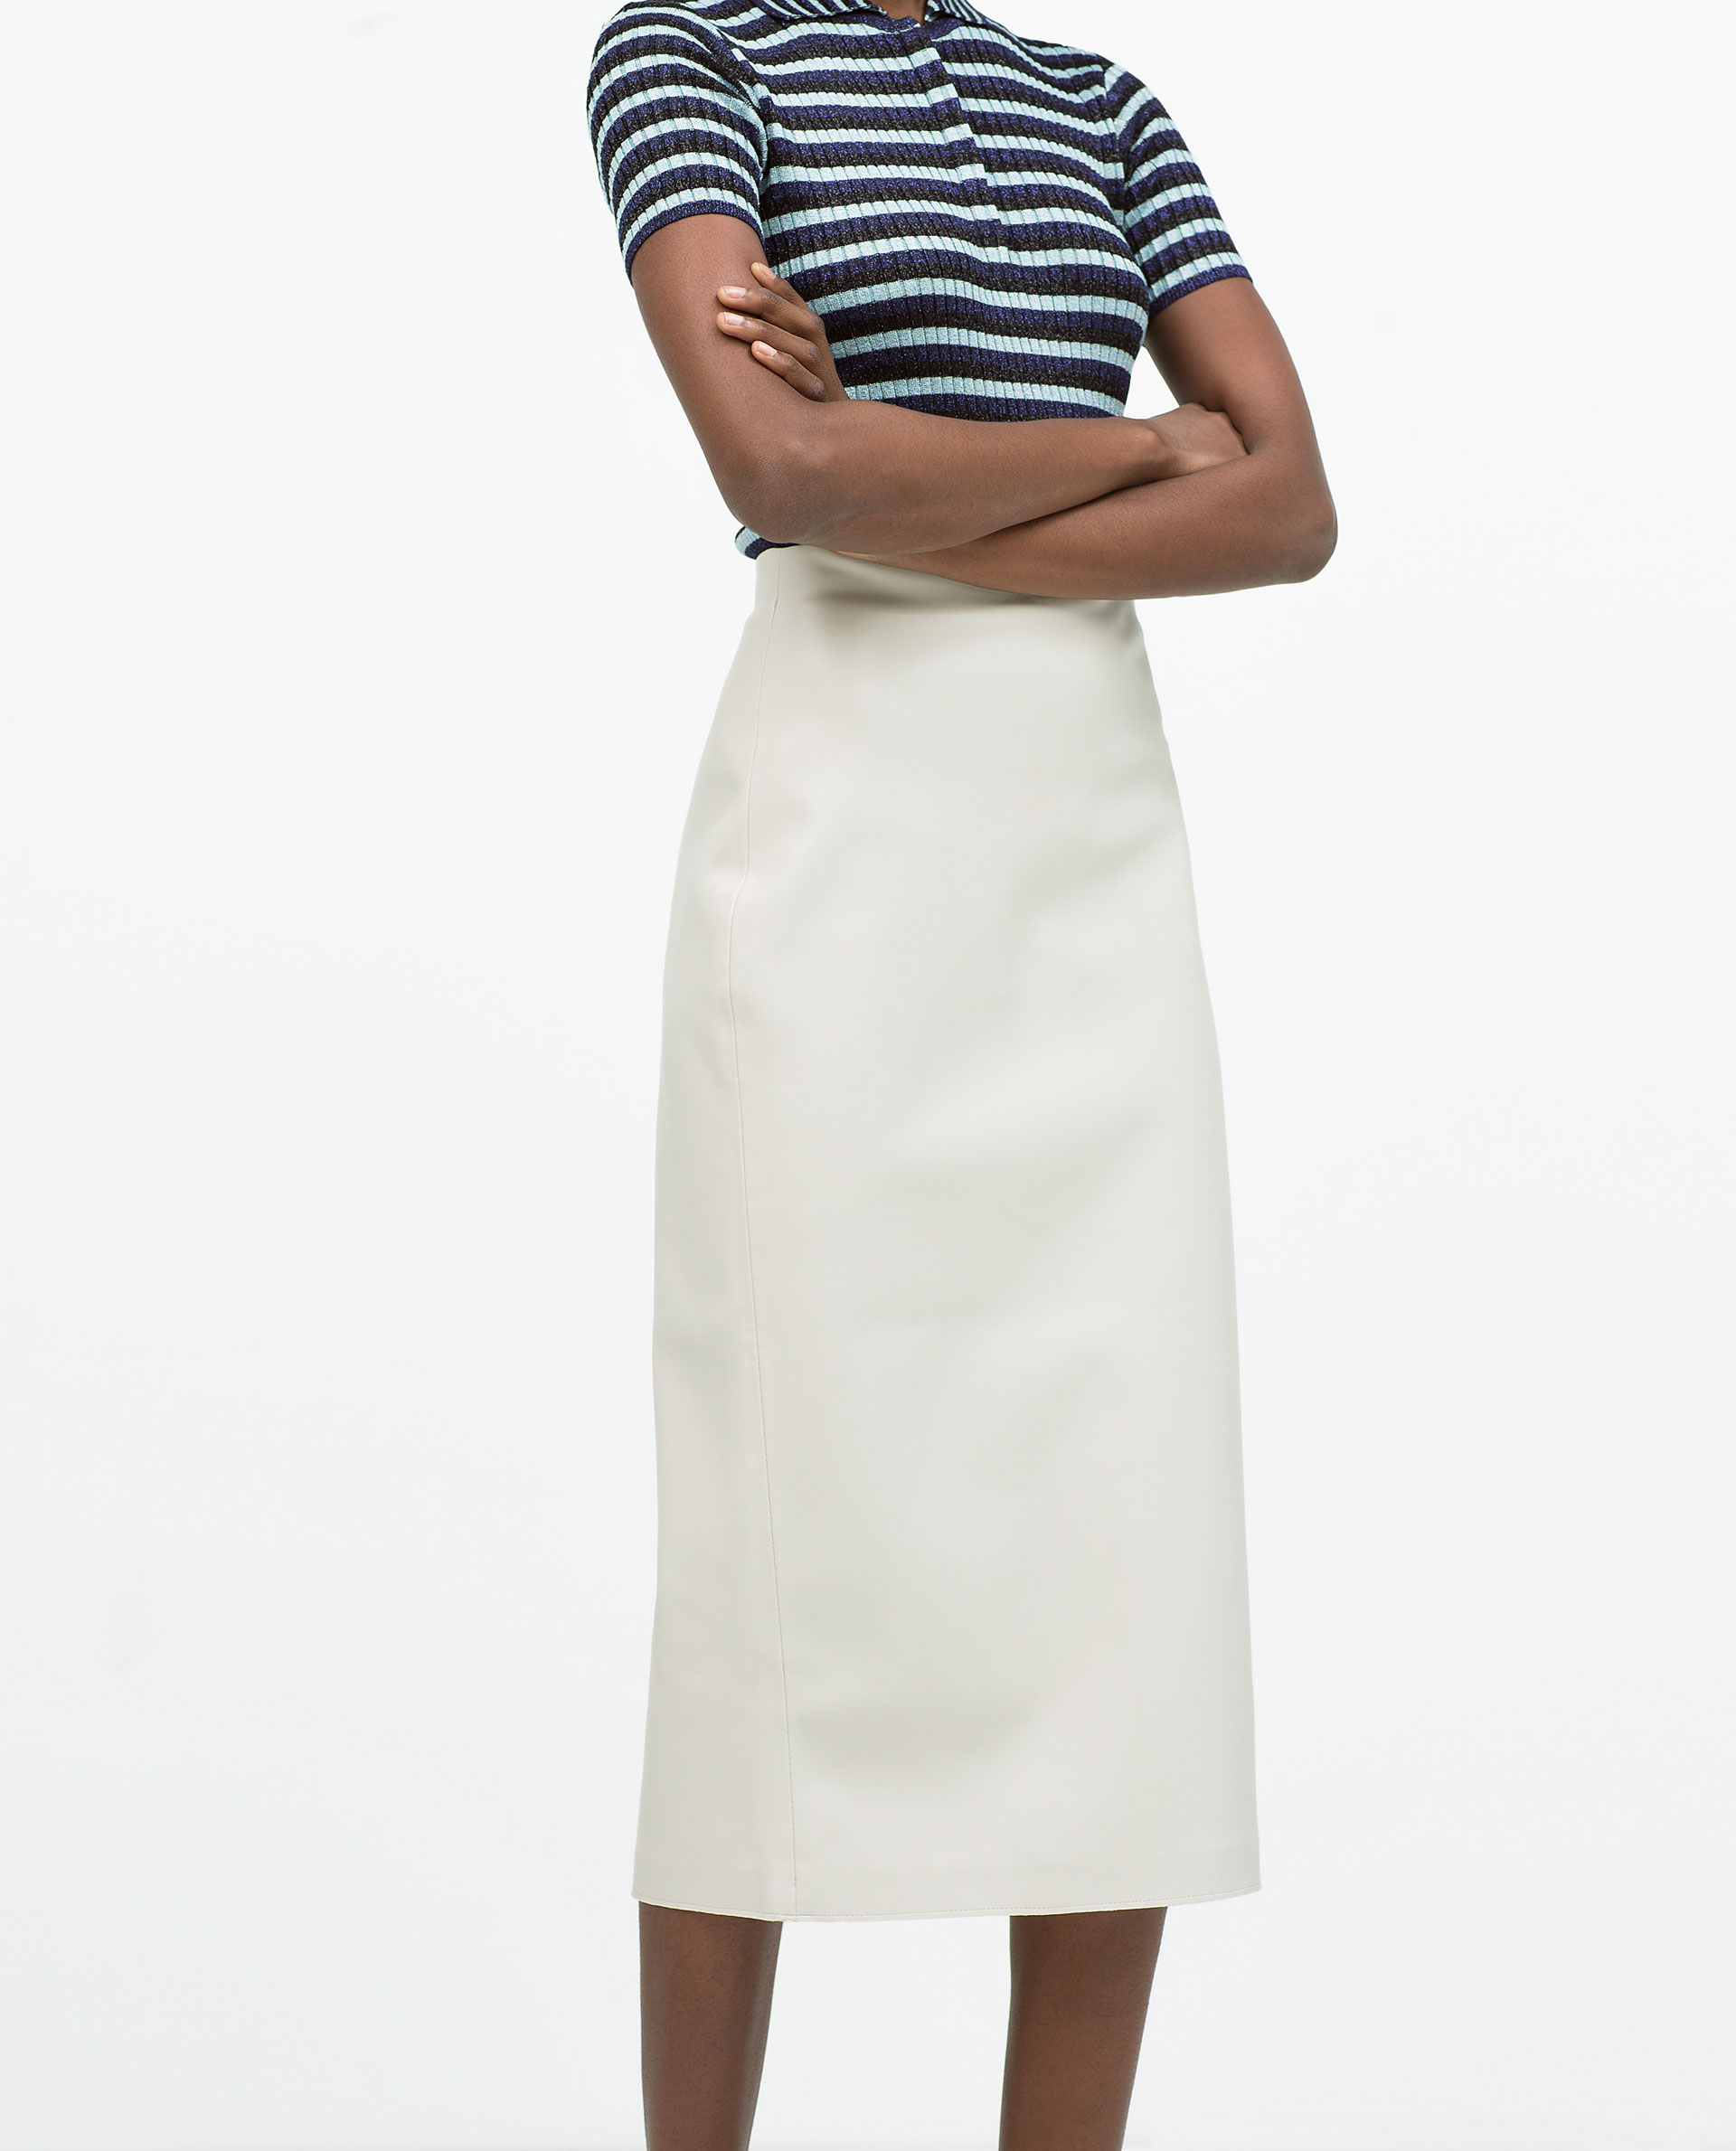 Zara Faux Leather Midi Pencil Skirt in White | Lyst